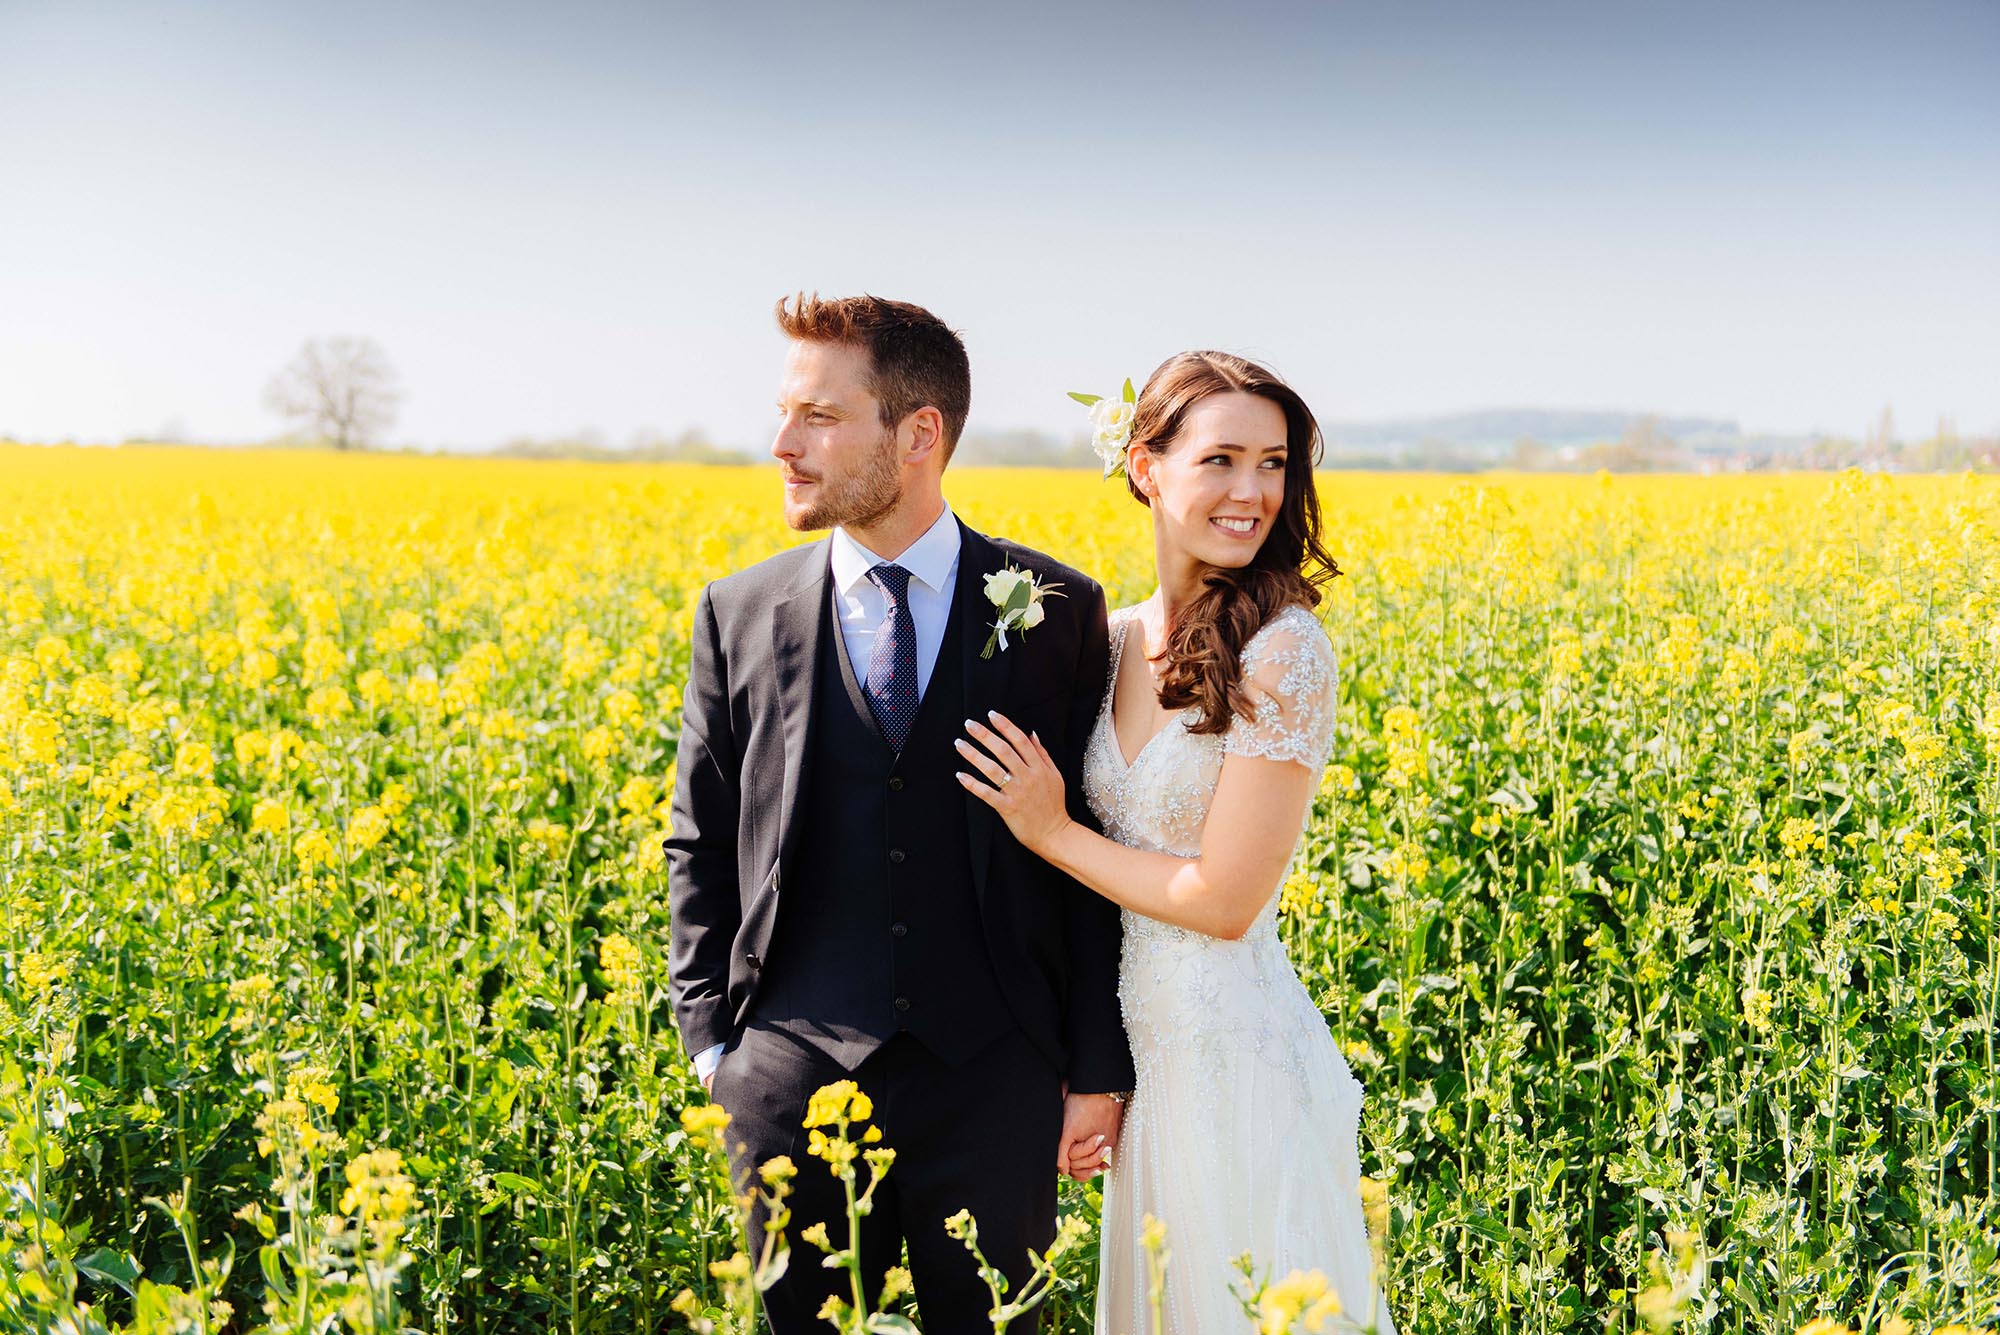 Nottingham wedding photography at The Carriage Hall - Kayleigh and Bernie